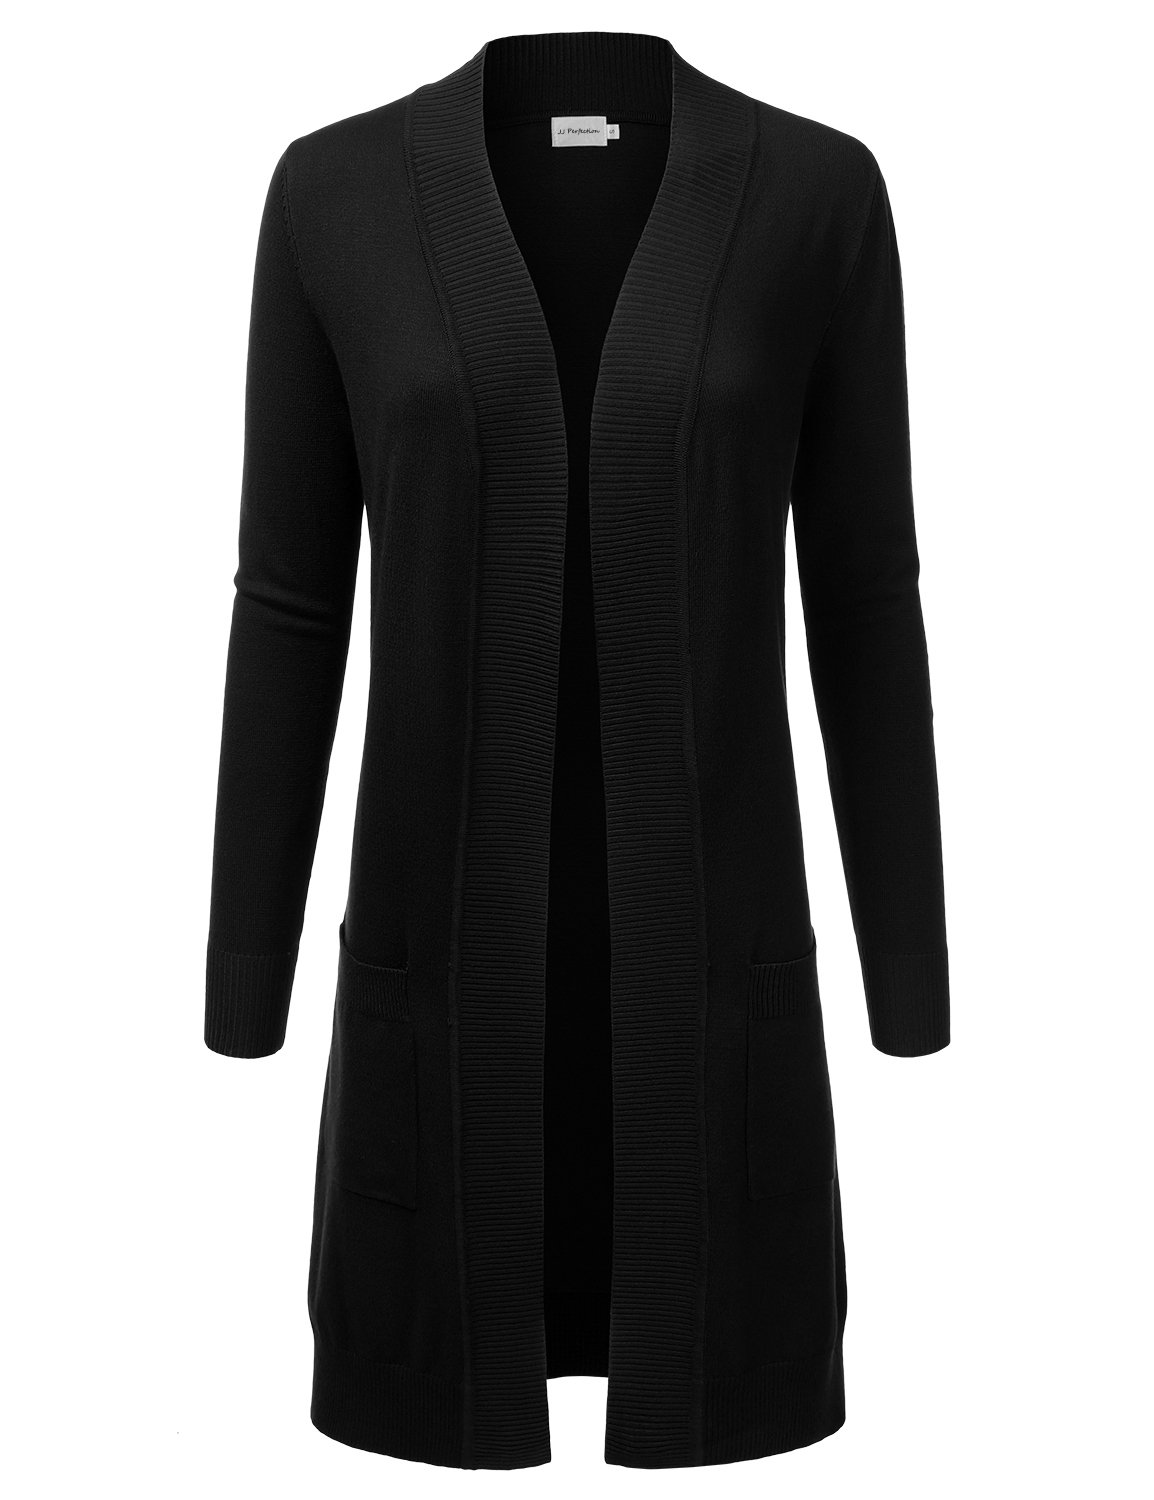 JJ Perfection Womens Light Weight Long Sleeve Open Front Long Cardigan Black M